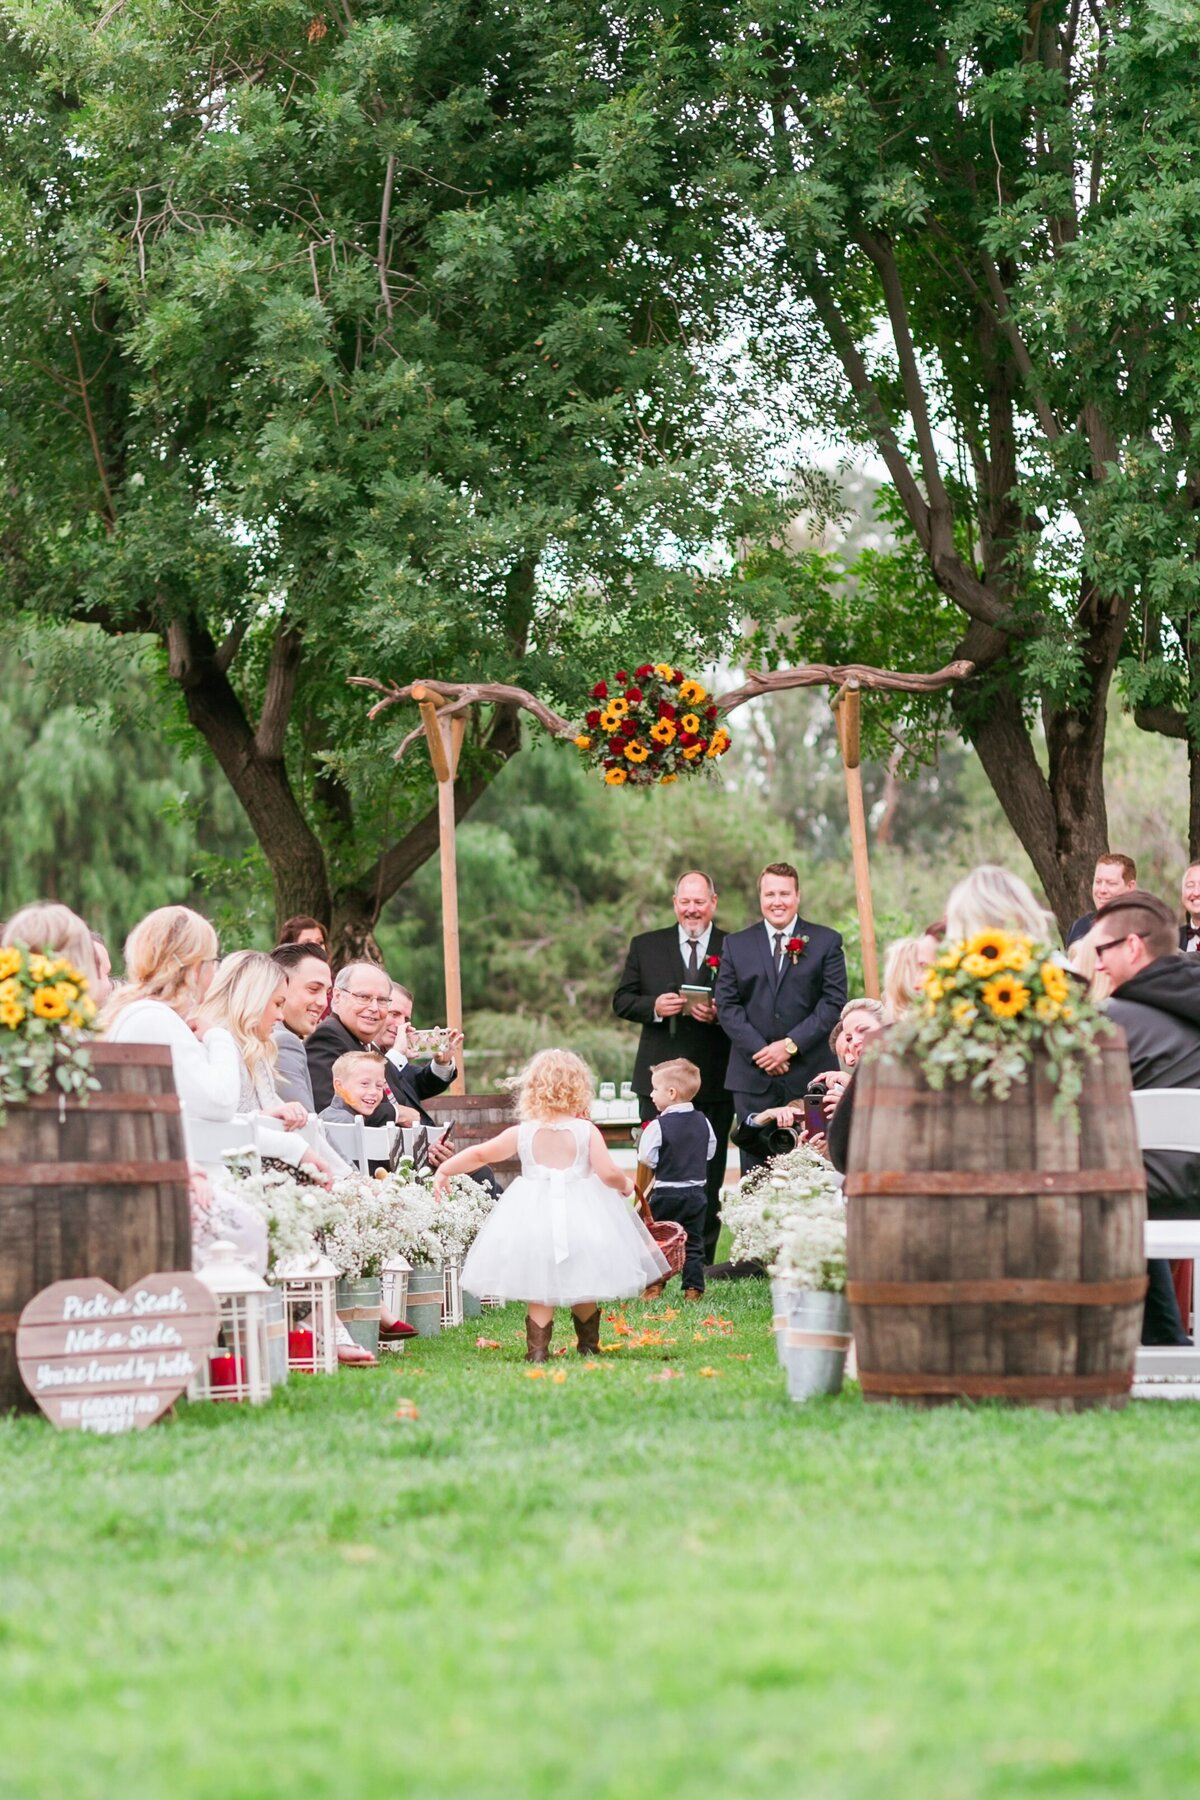 Kelli-Bee-Photography-Gallery-Farm-Southern-CA-Norco-Rustic-Wedding-Luxury-Lifestyle-Photographer-Lauren-Ben-0035